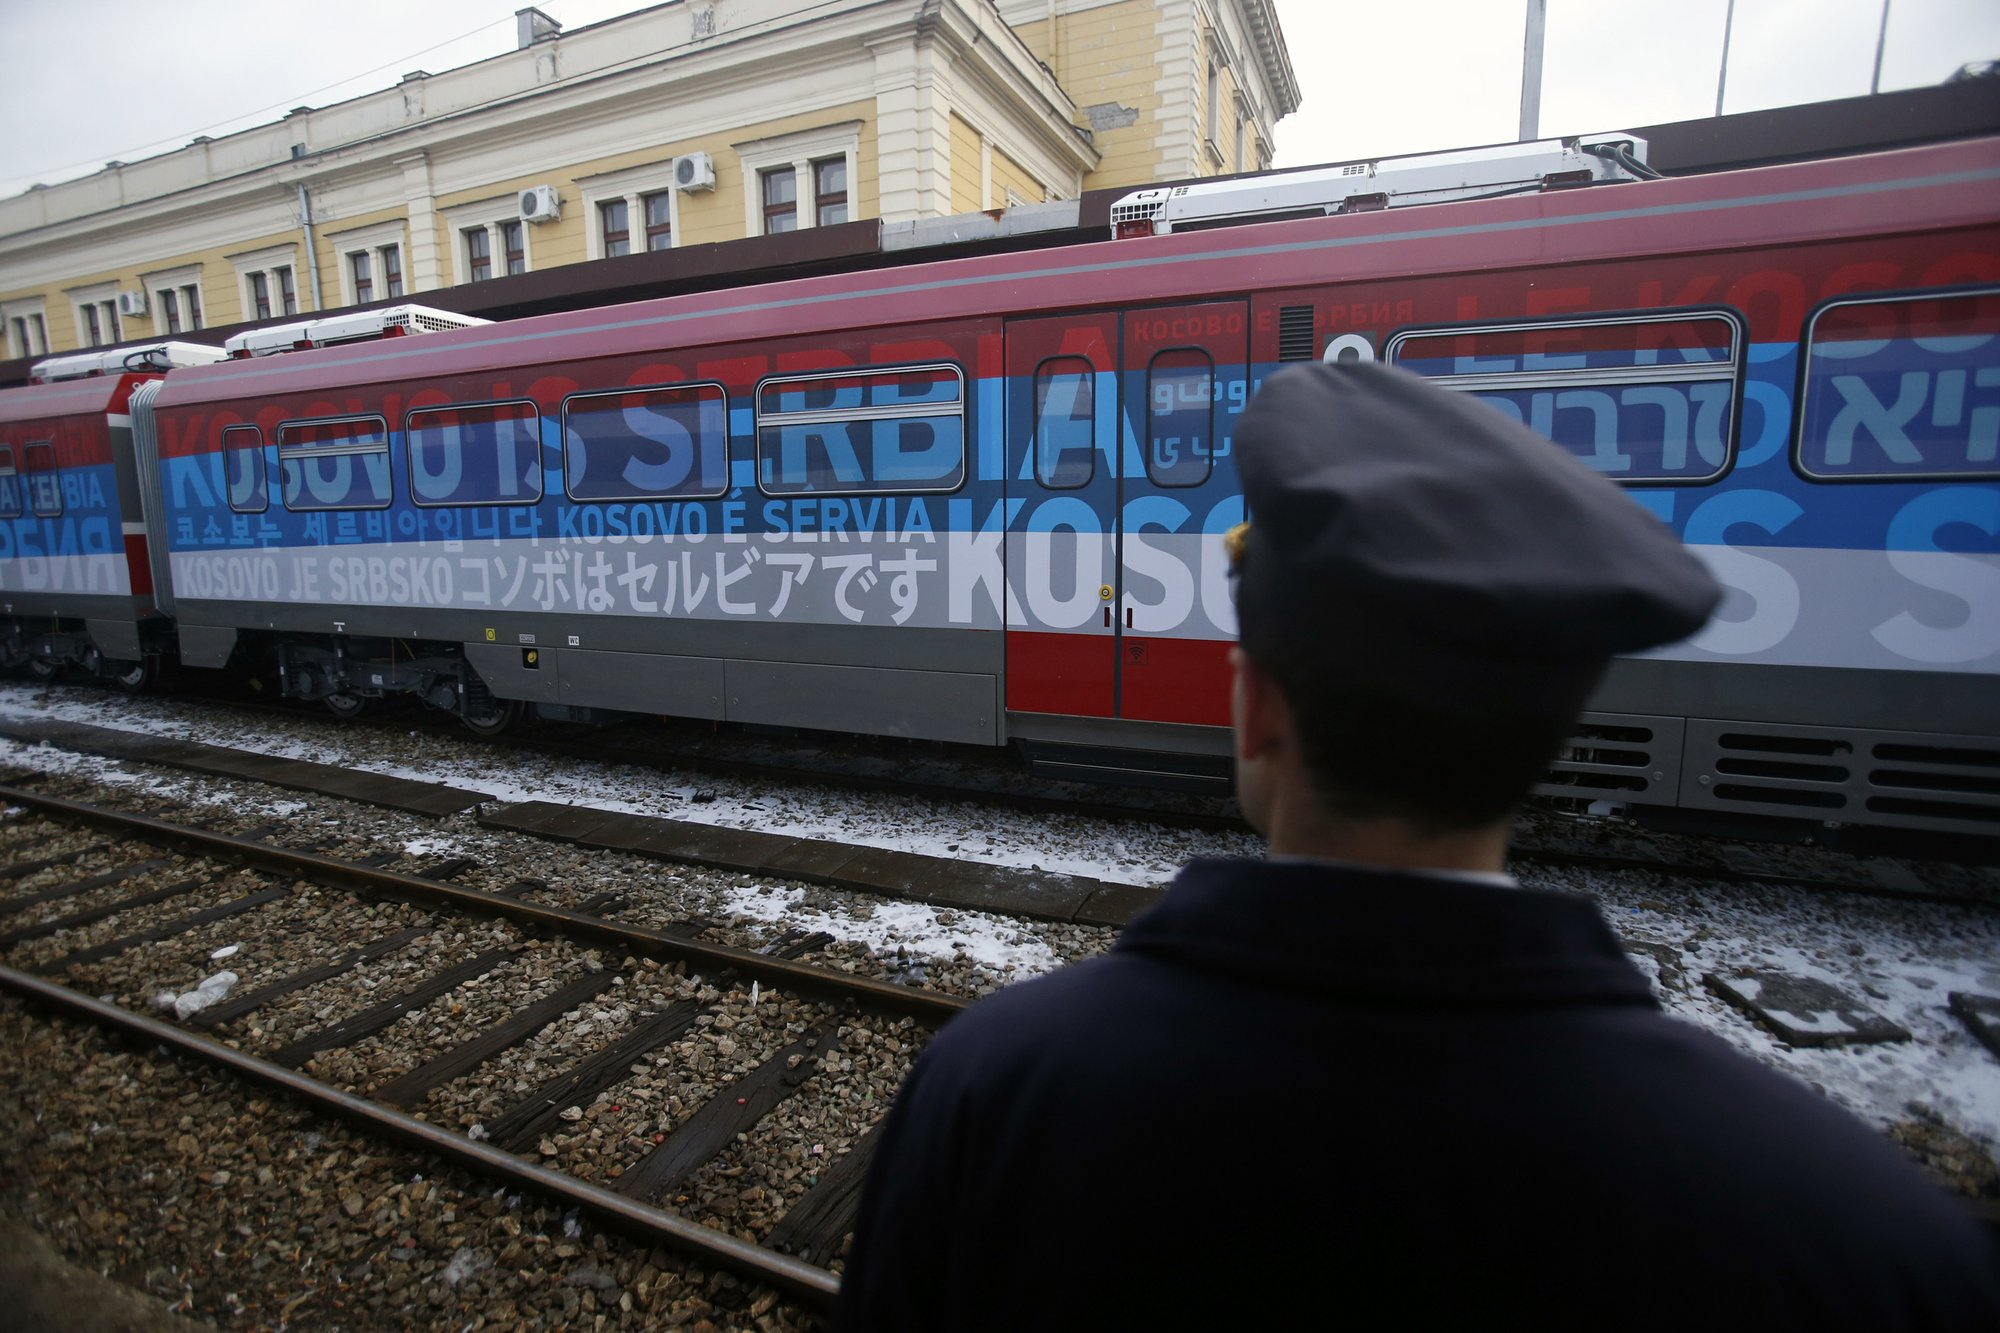 Tensions flare as Serb nationalist train halts at border